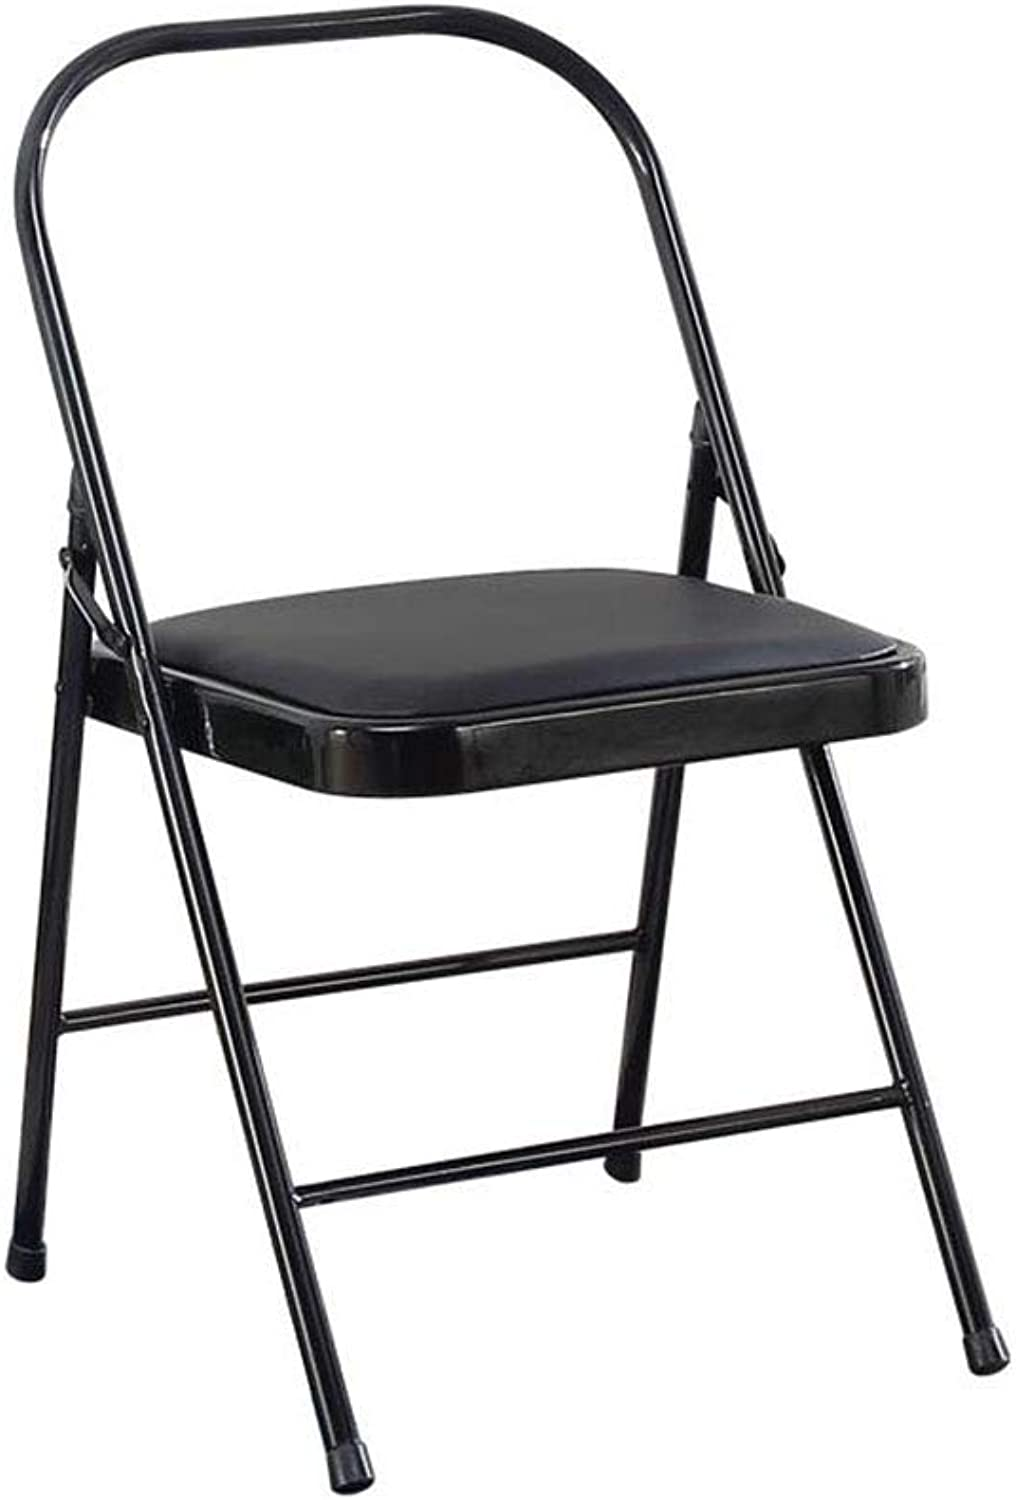 Folding Chair Office Desk Chair Black Padded Steel Metal + Faux Leather